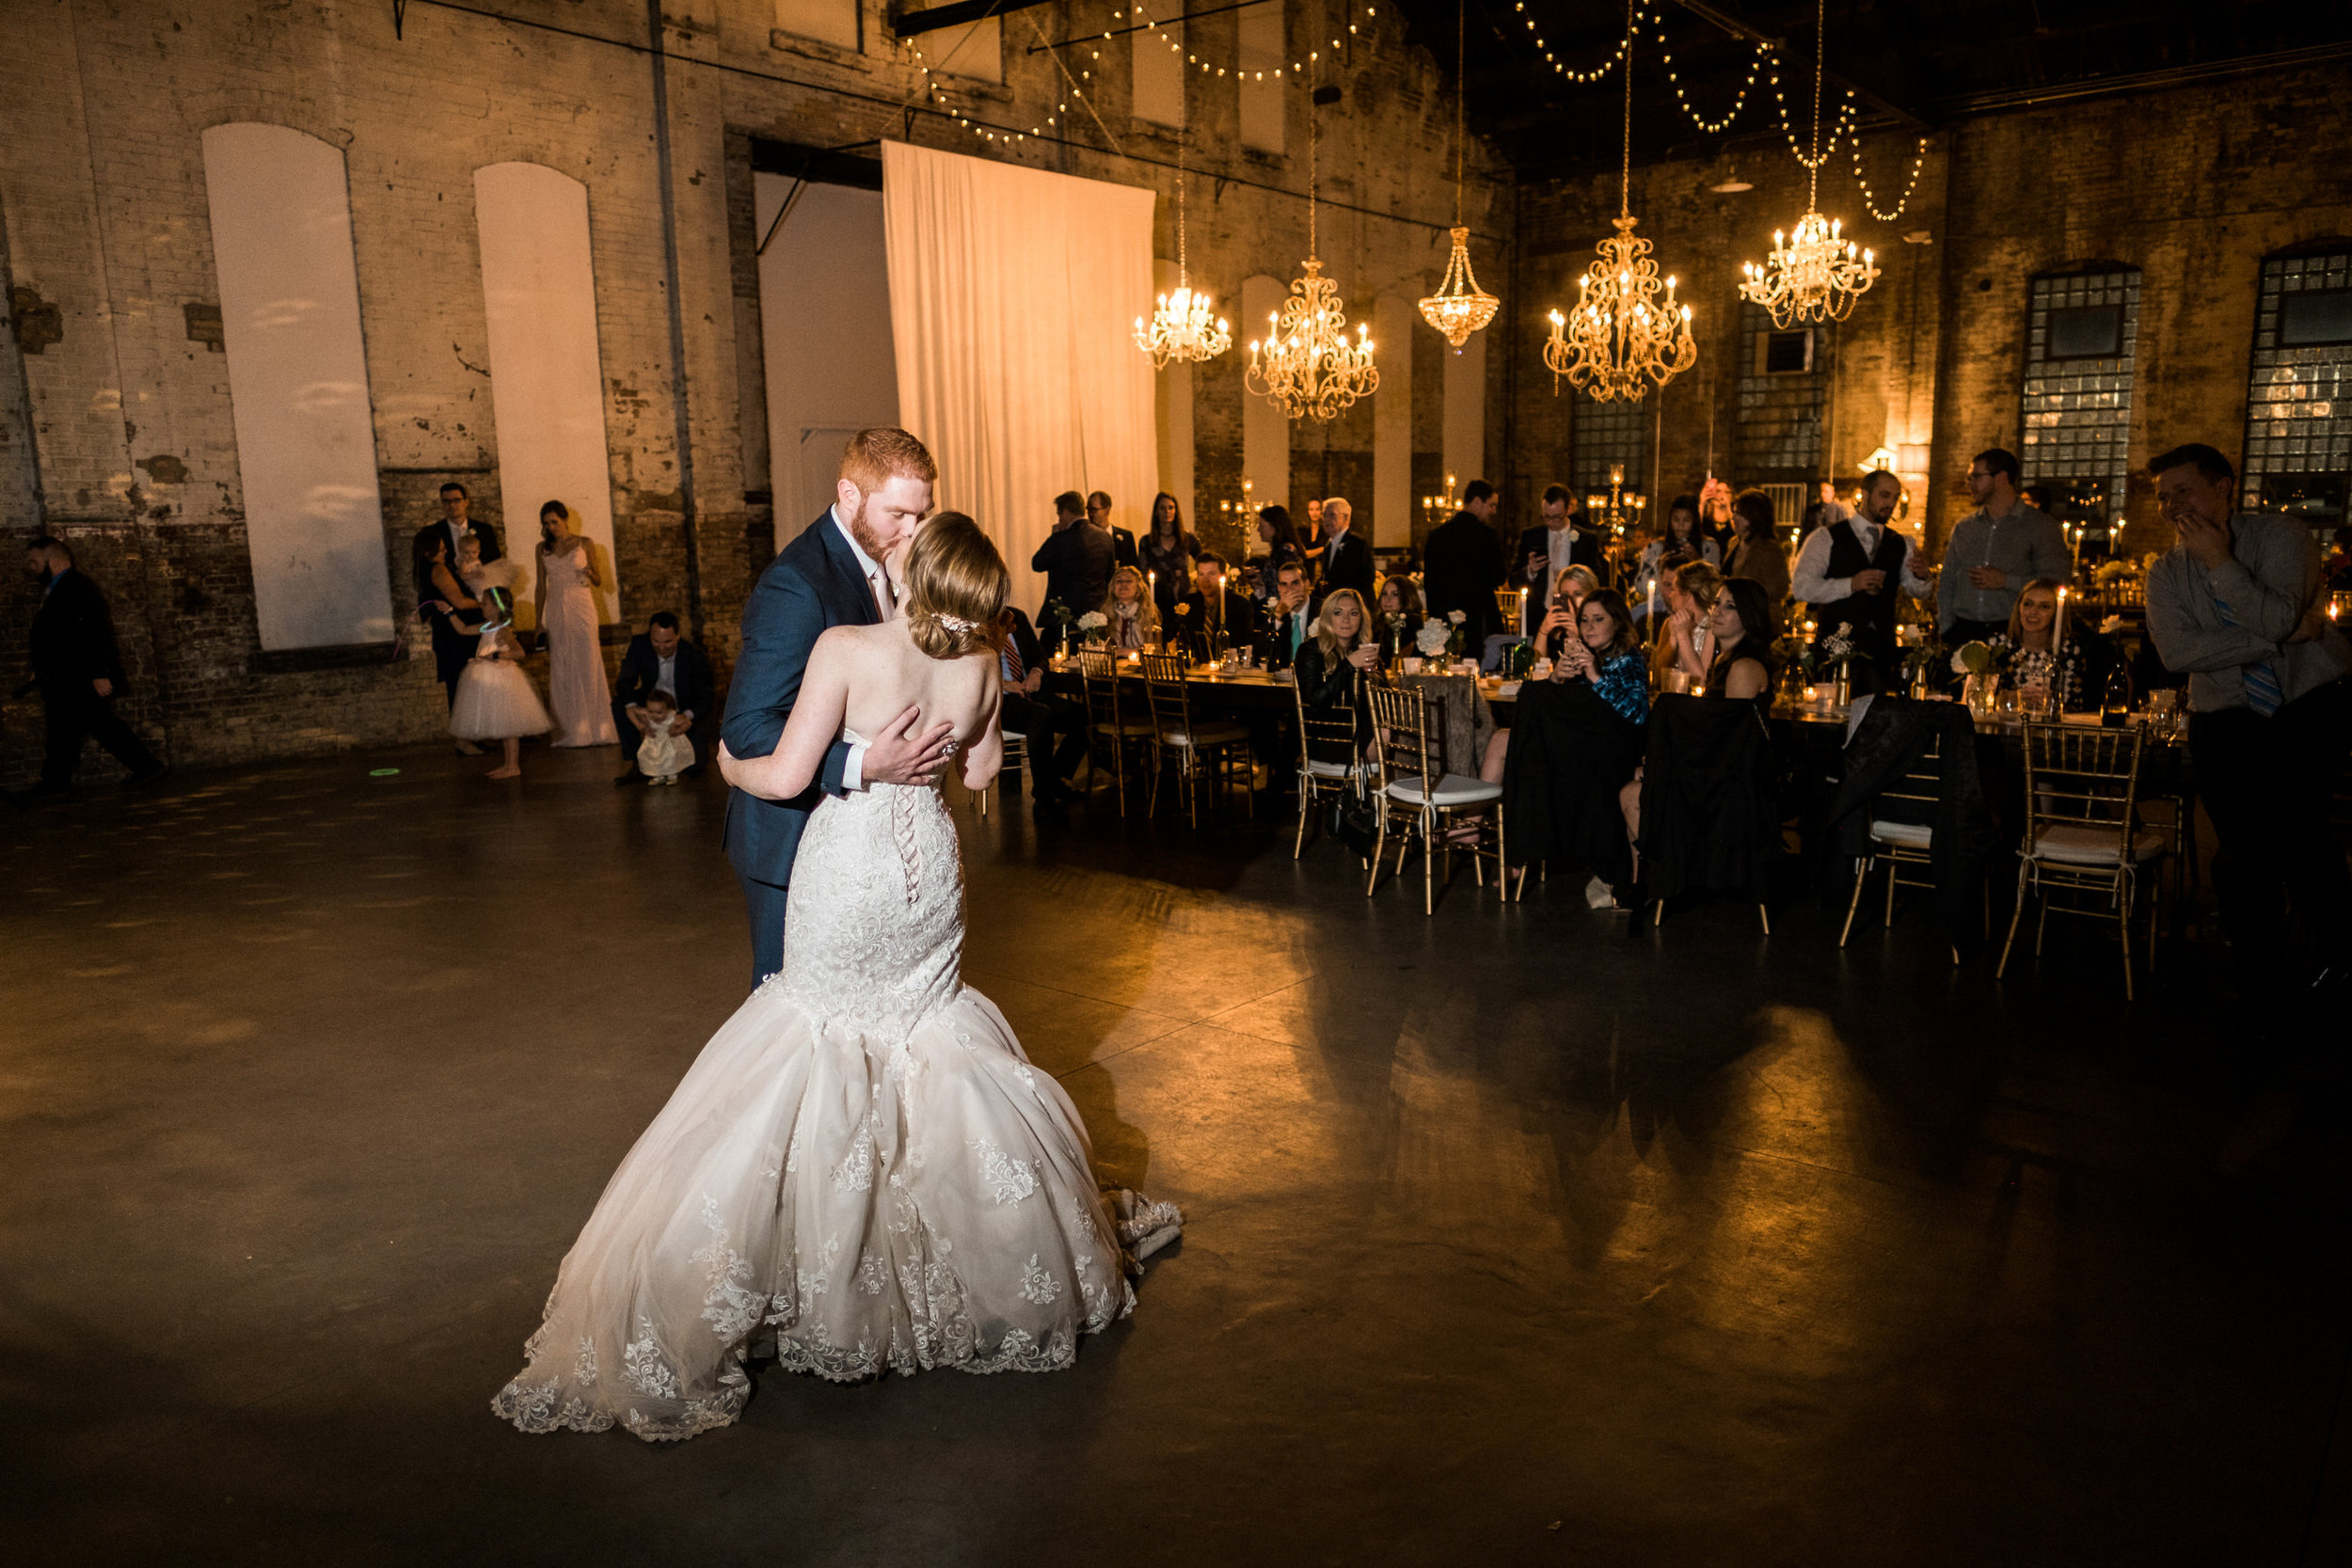 couple's first dance with the beauty of the np space in the background